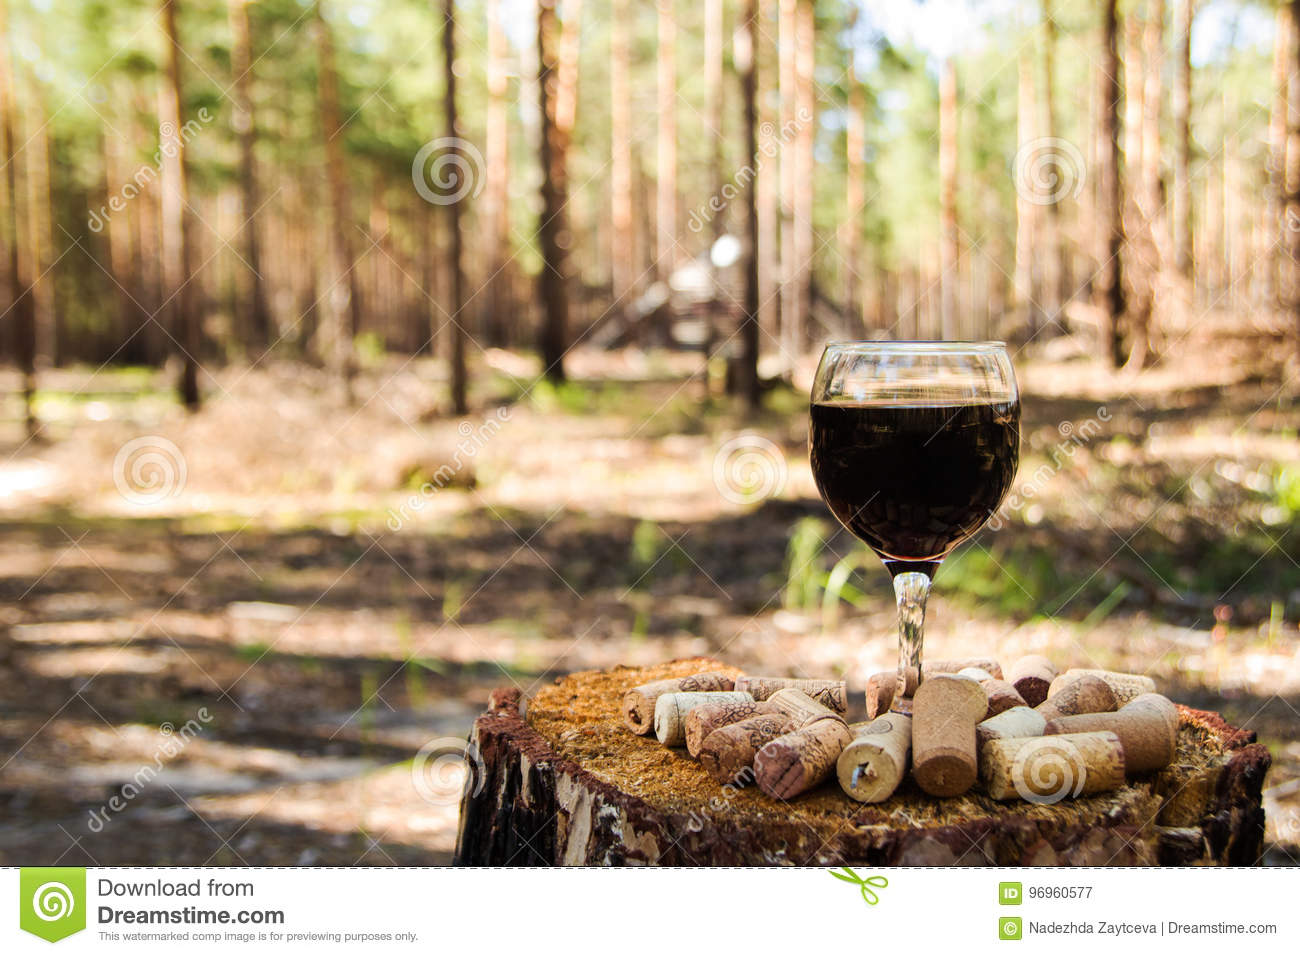 A glass with a red wine and wine corks on a stump in a summer forest.